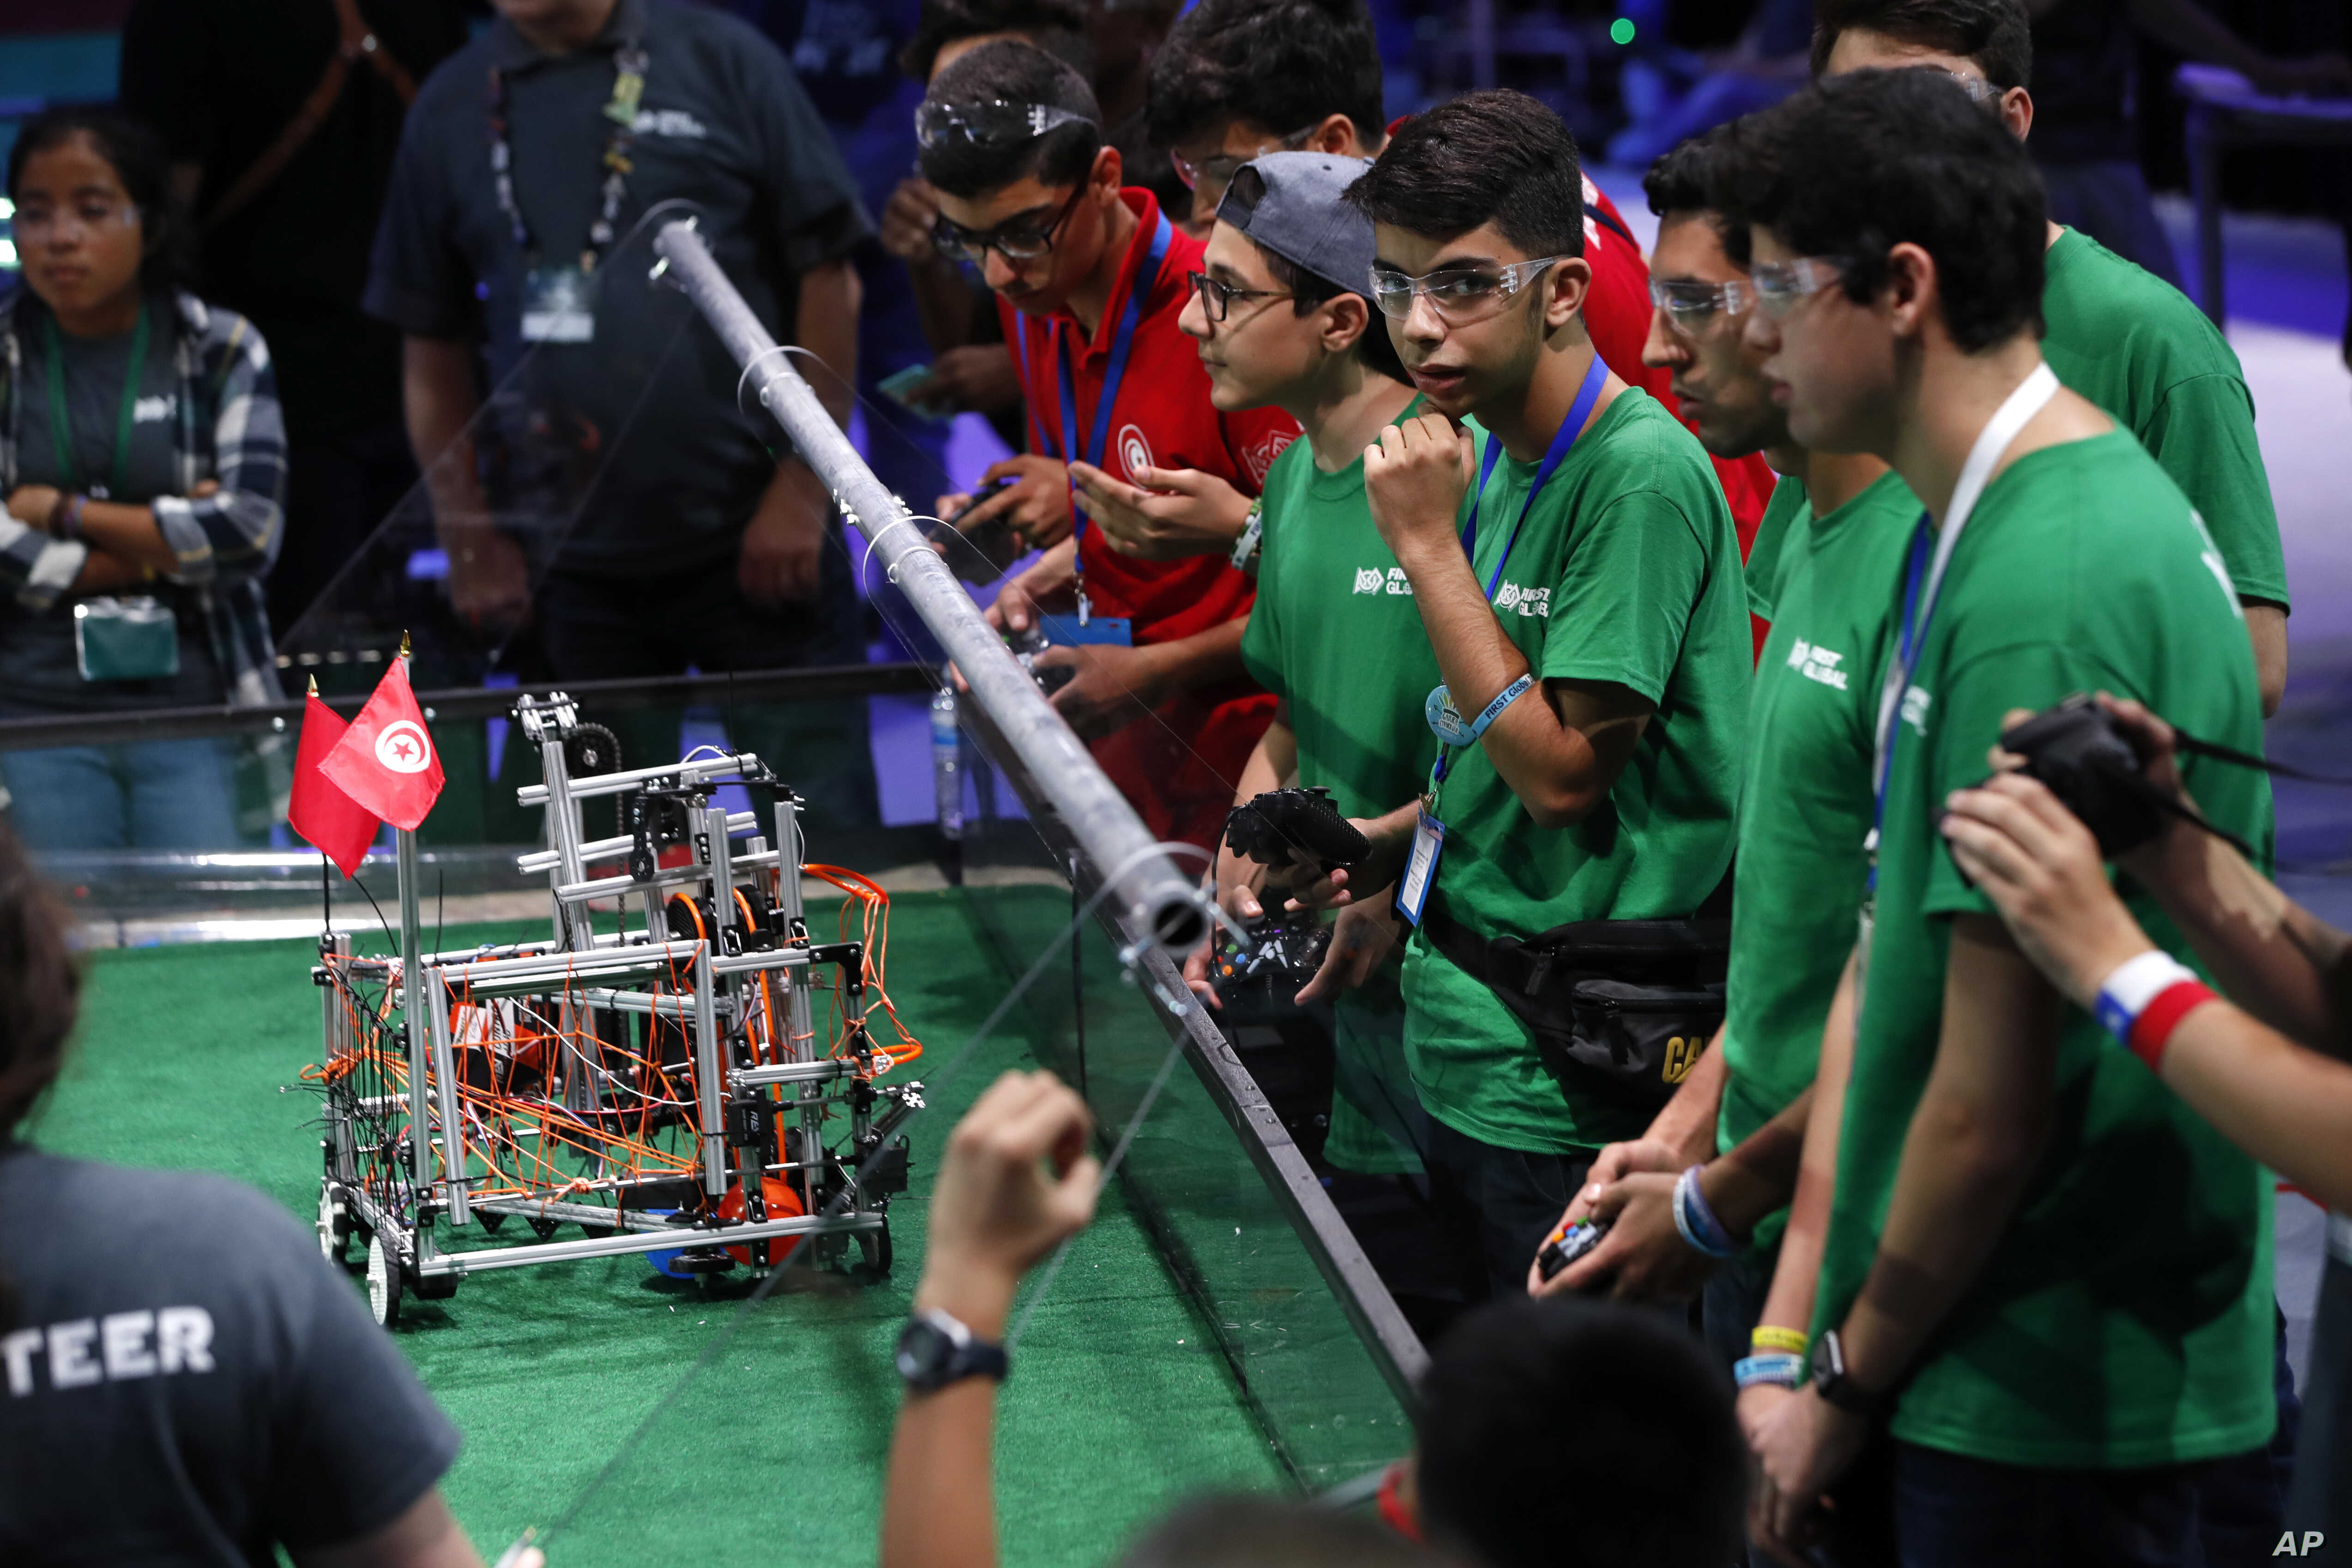 Team Iran, in green, competes in the FIRST Global Robotics Challenge, July 18, 2017, in Washington.